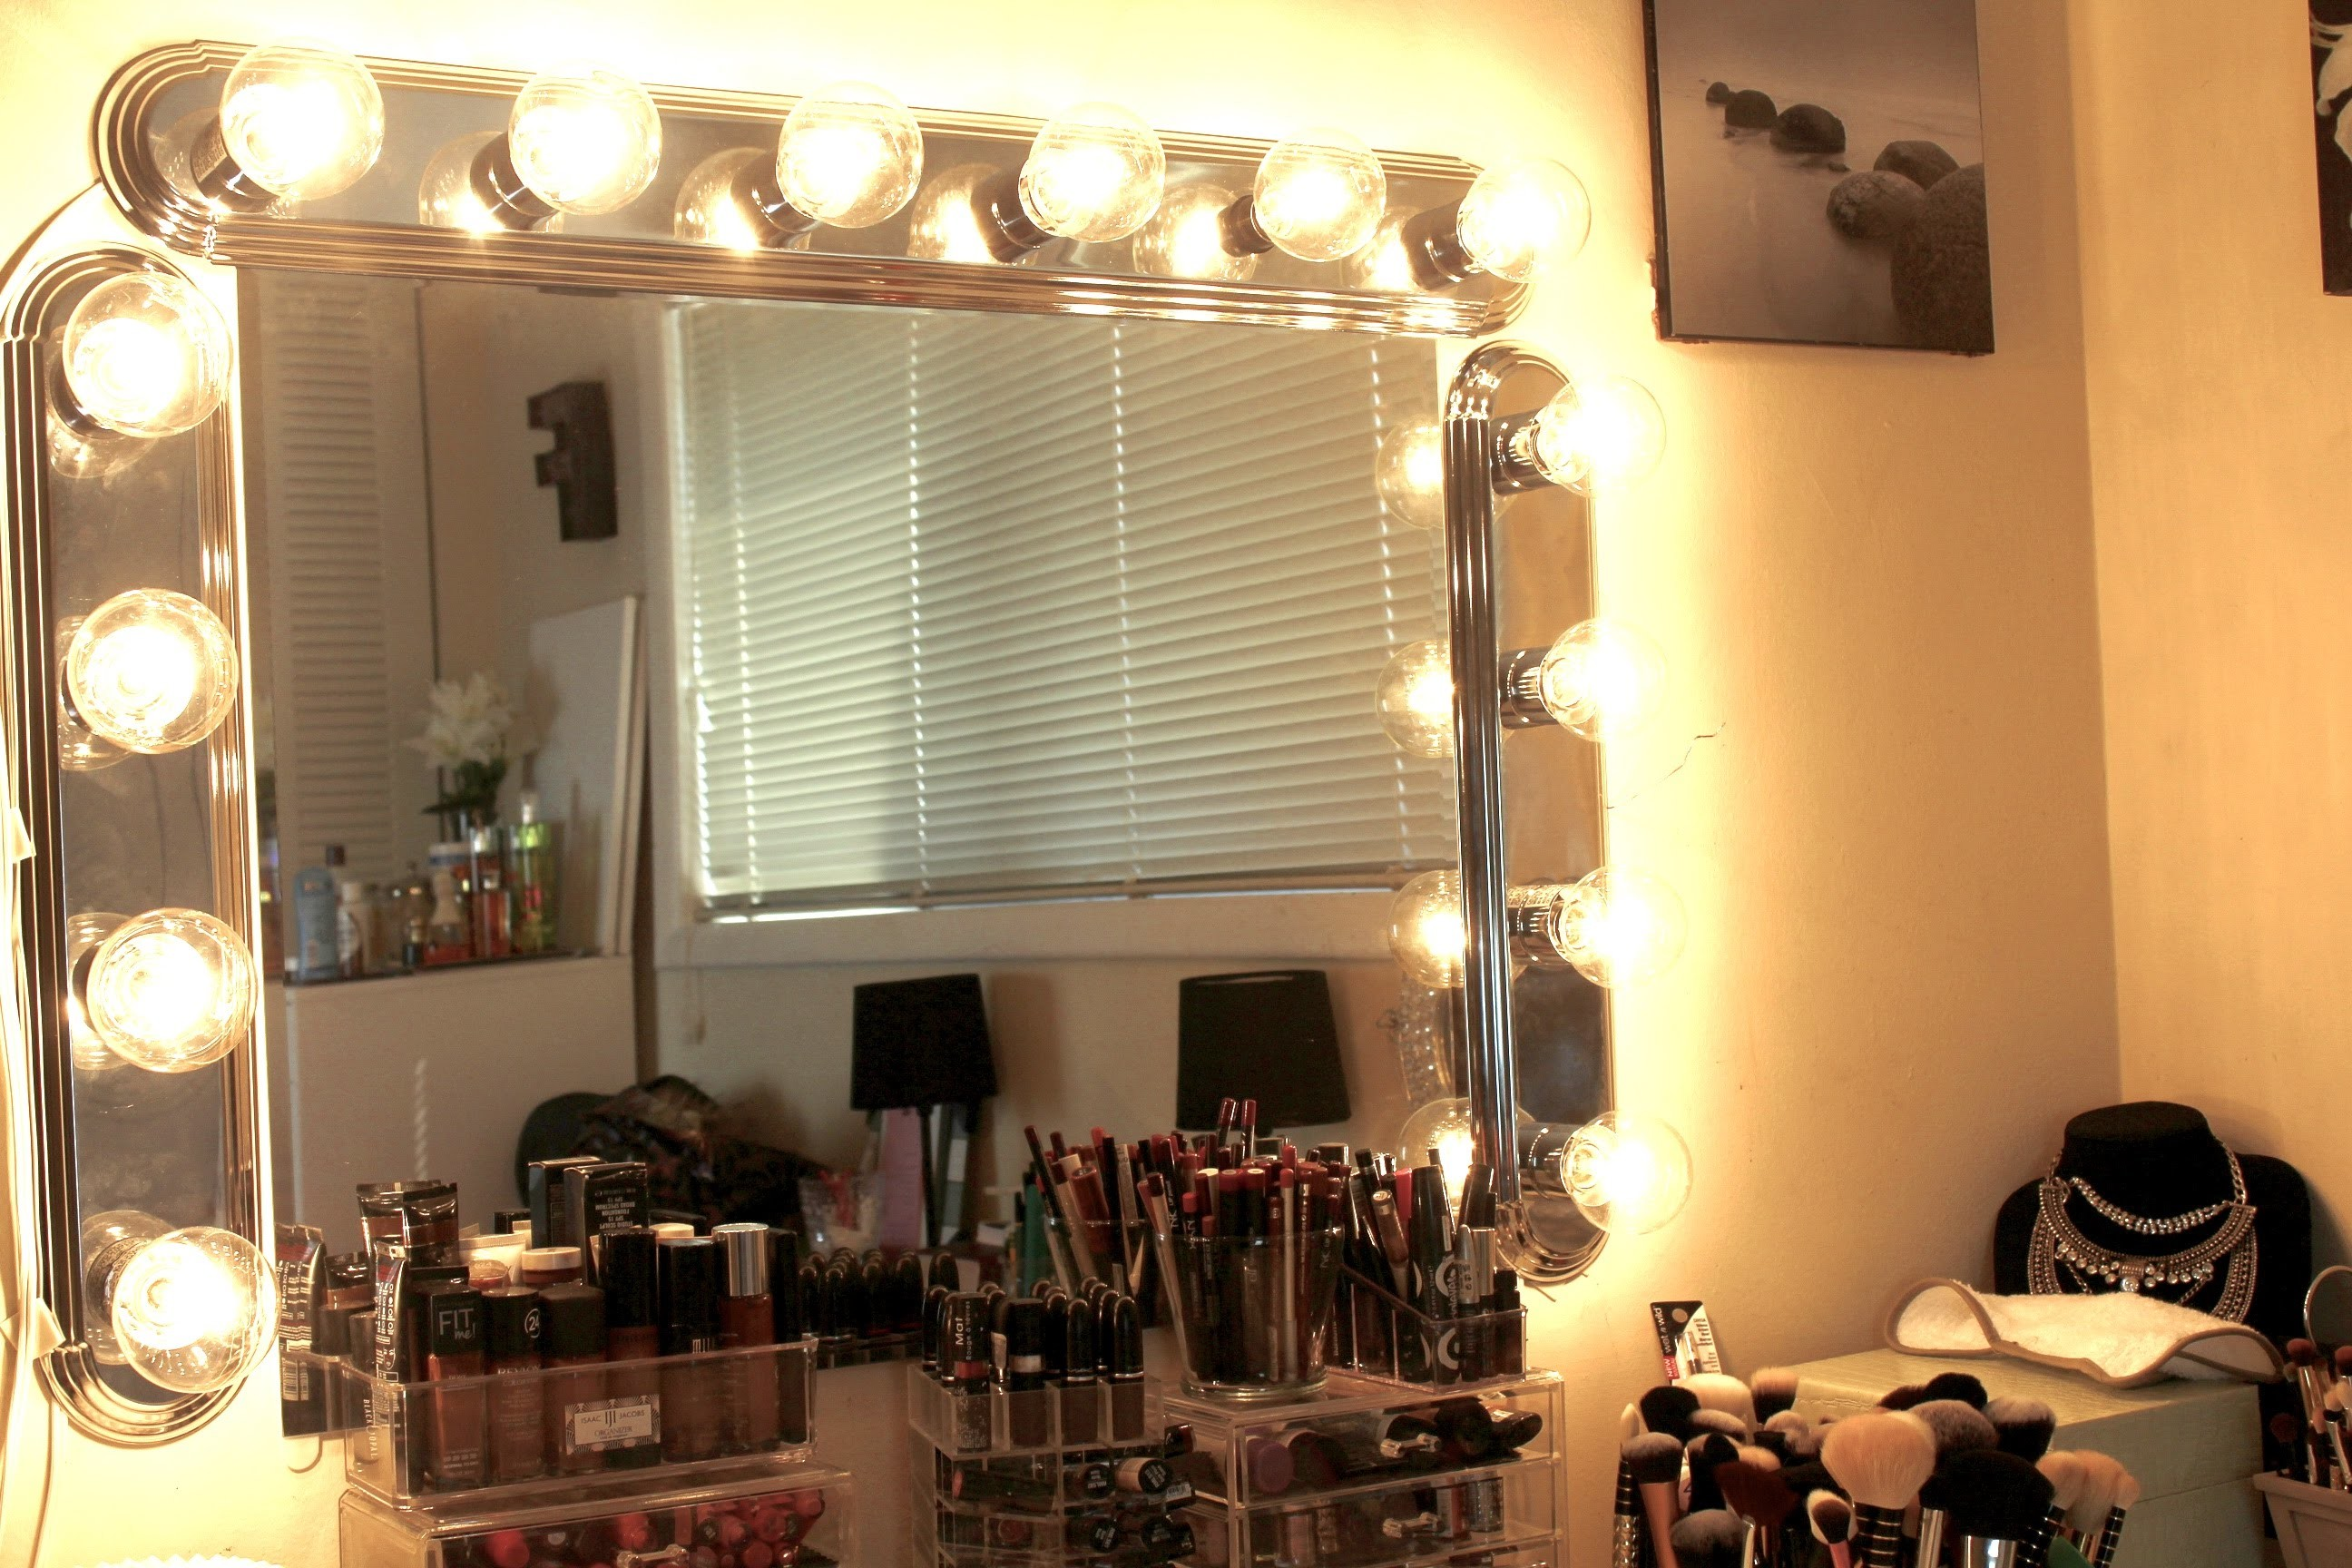 HOW TO: Cheap Vanity Lights DIY Under $100